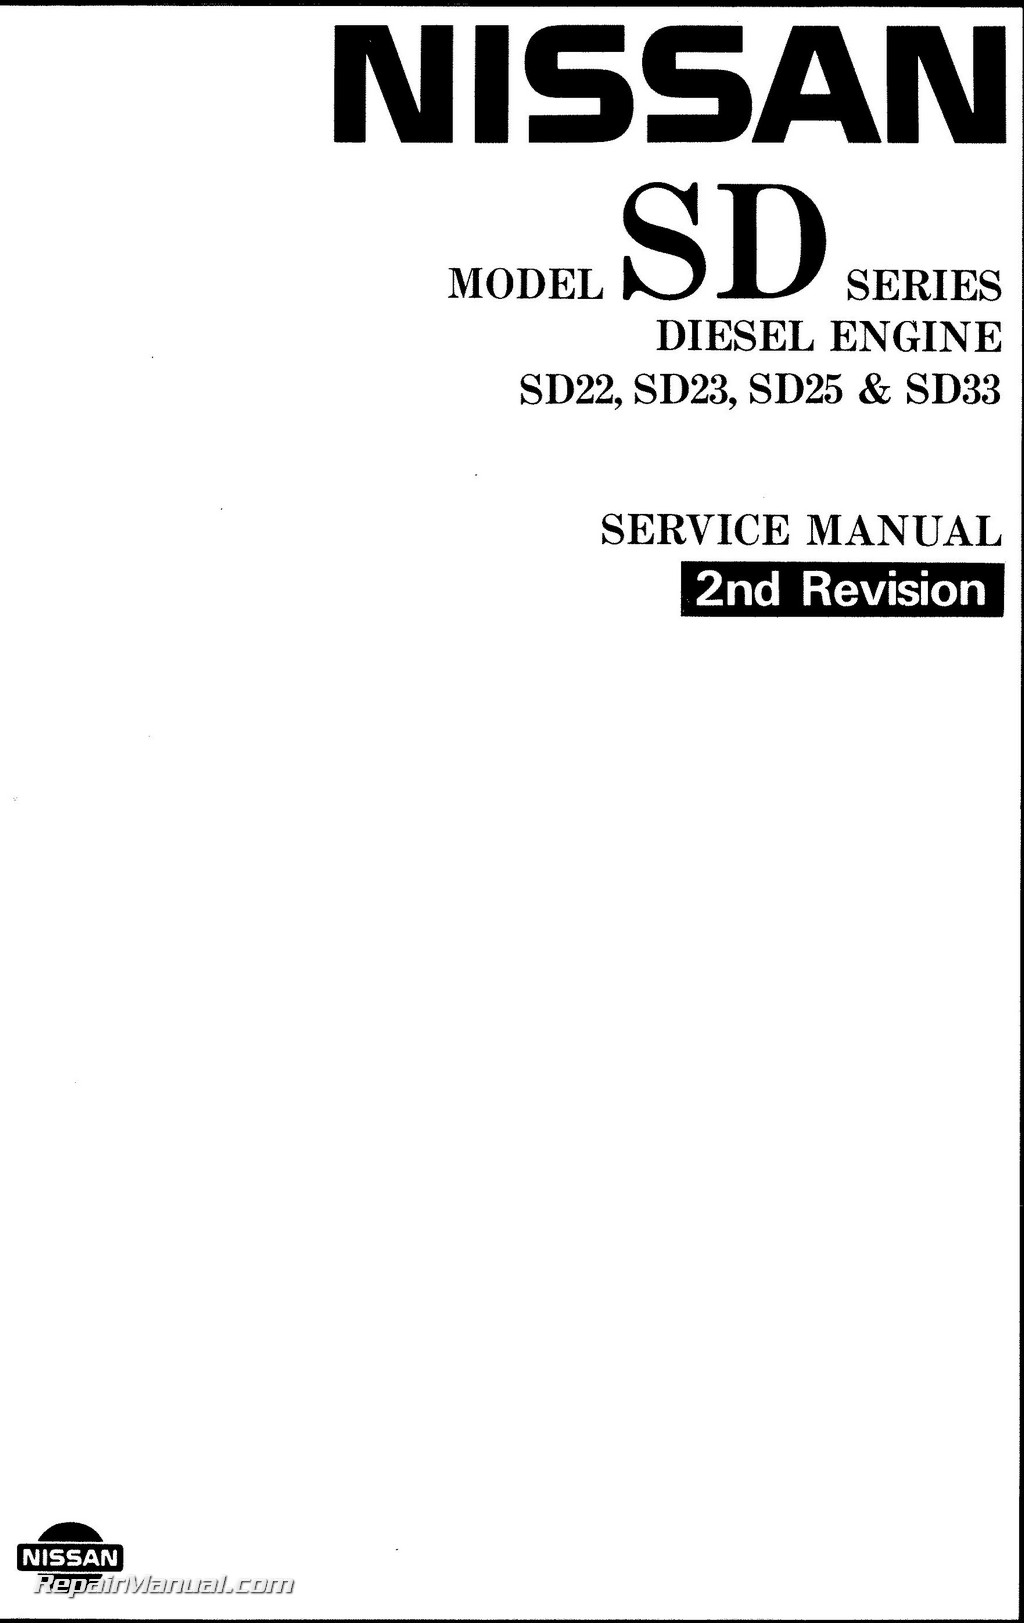 nissan diesel engine sd sd sd sd sdt service manual